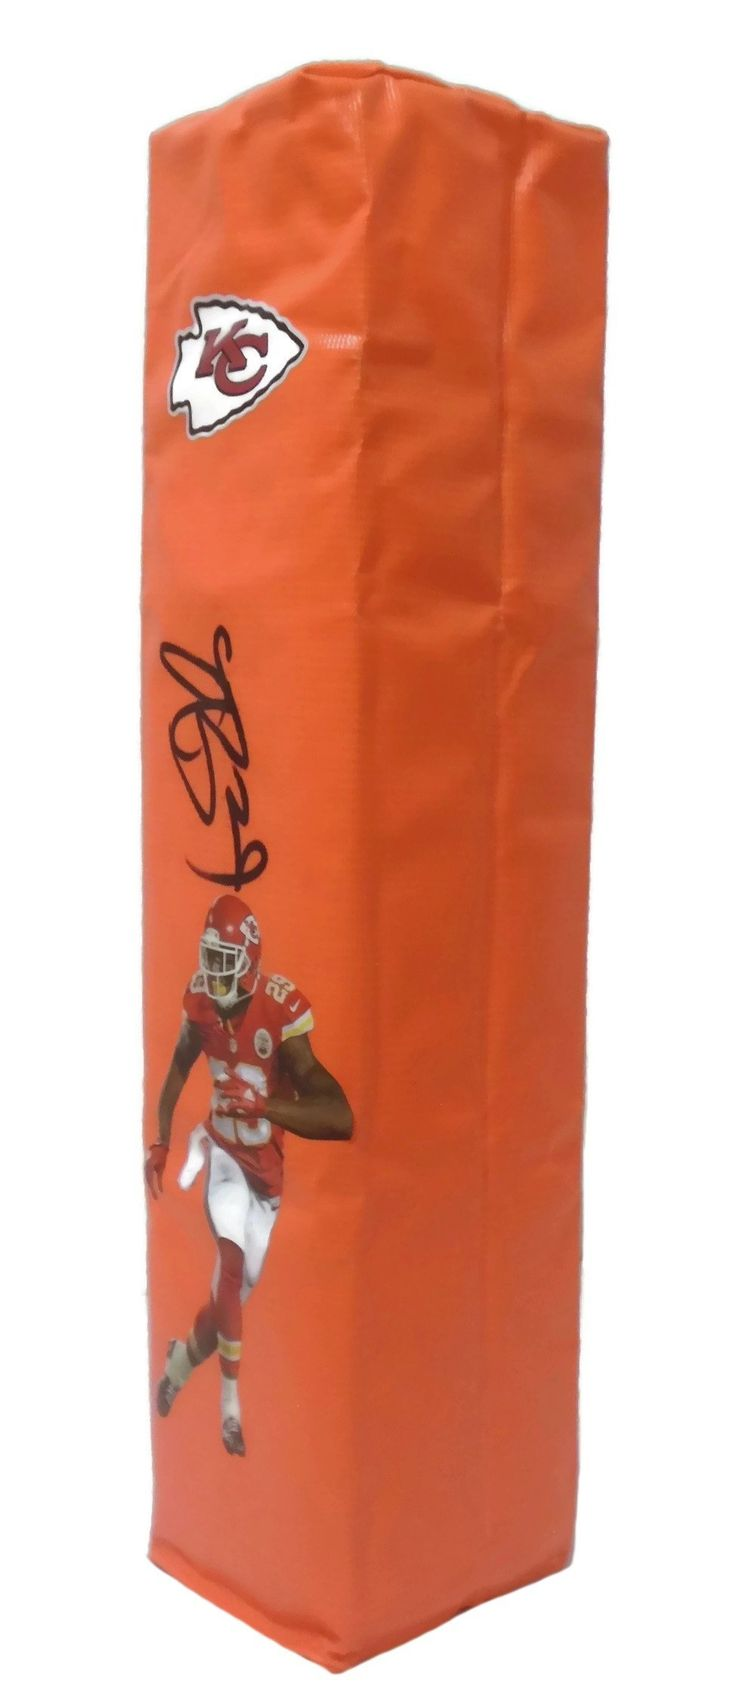 Eric Berry Autographed KC Chiefs Photo Full Size Football End Zone Touchdown Pylon, Proof